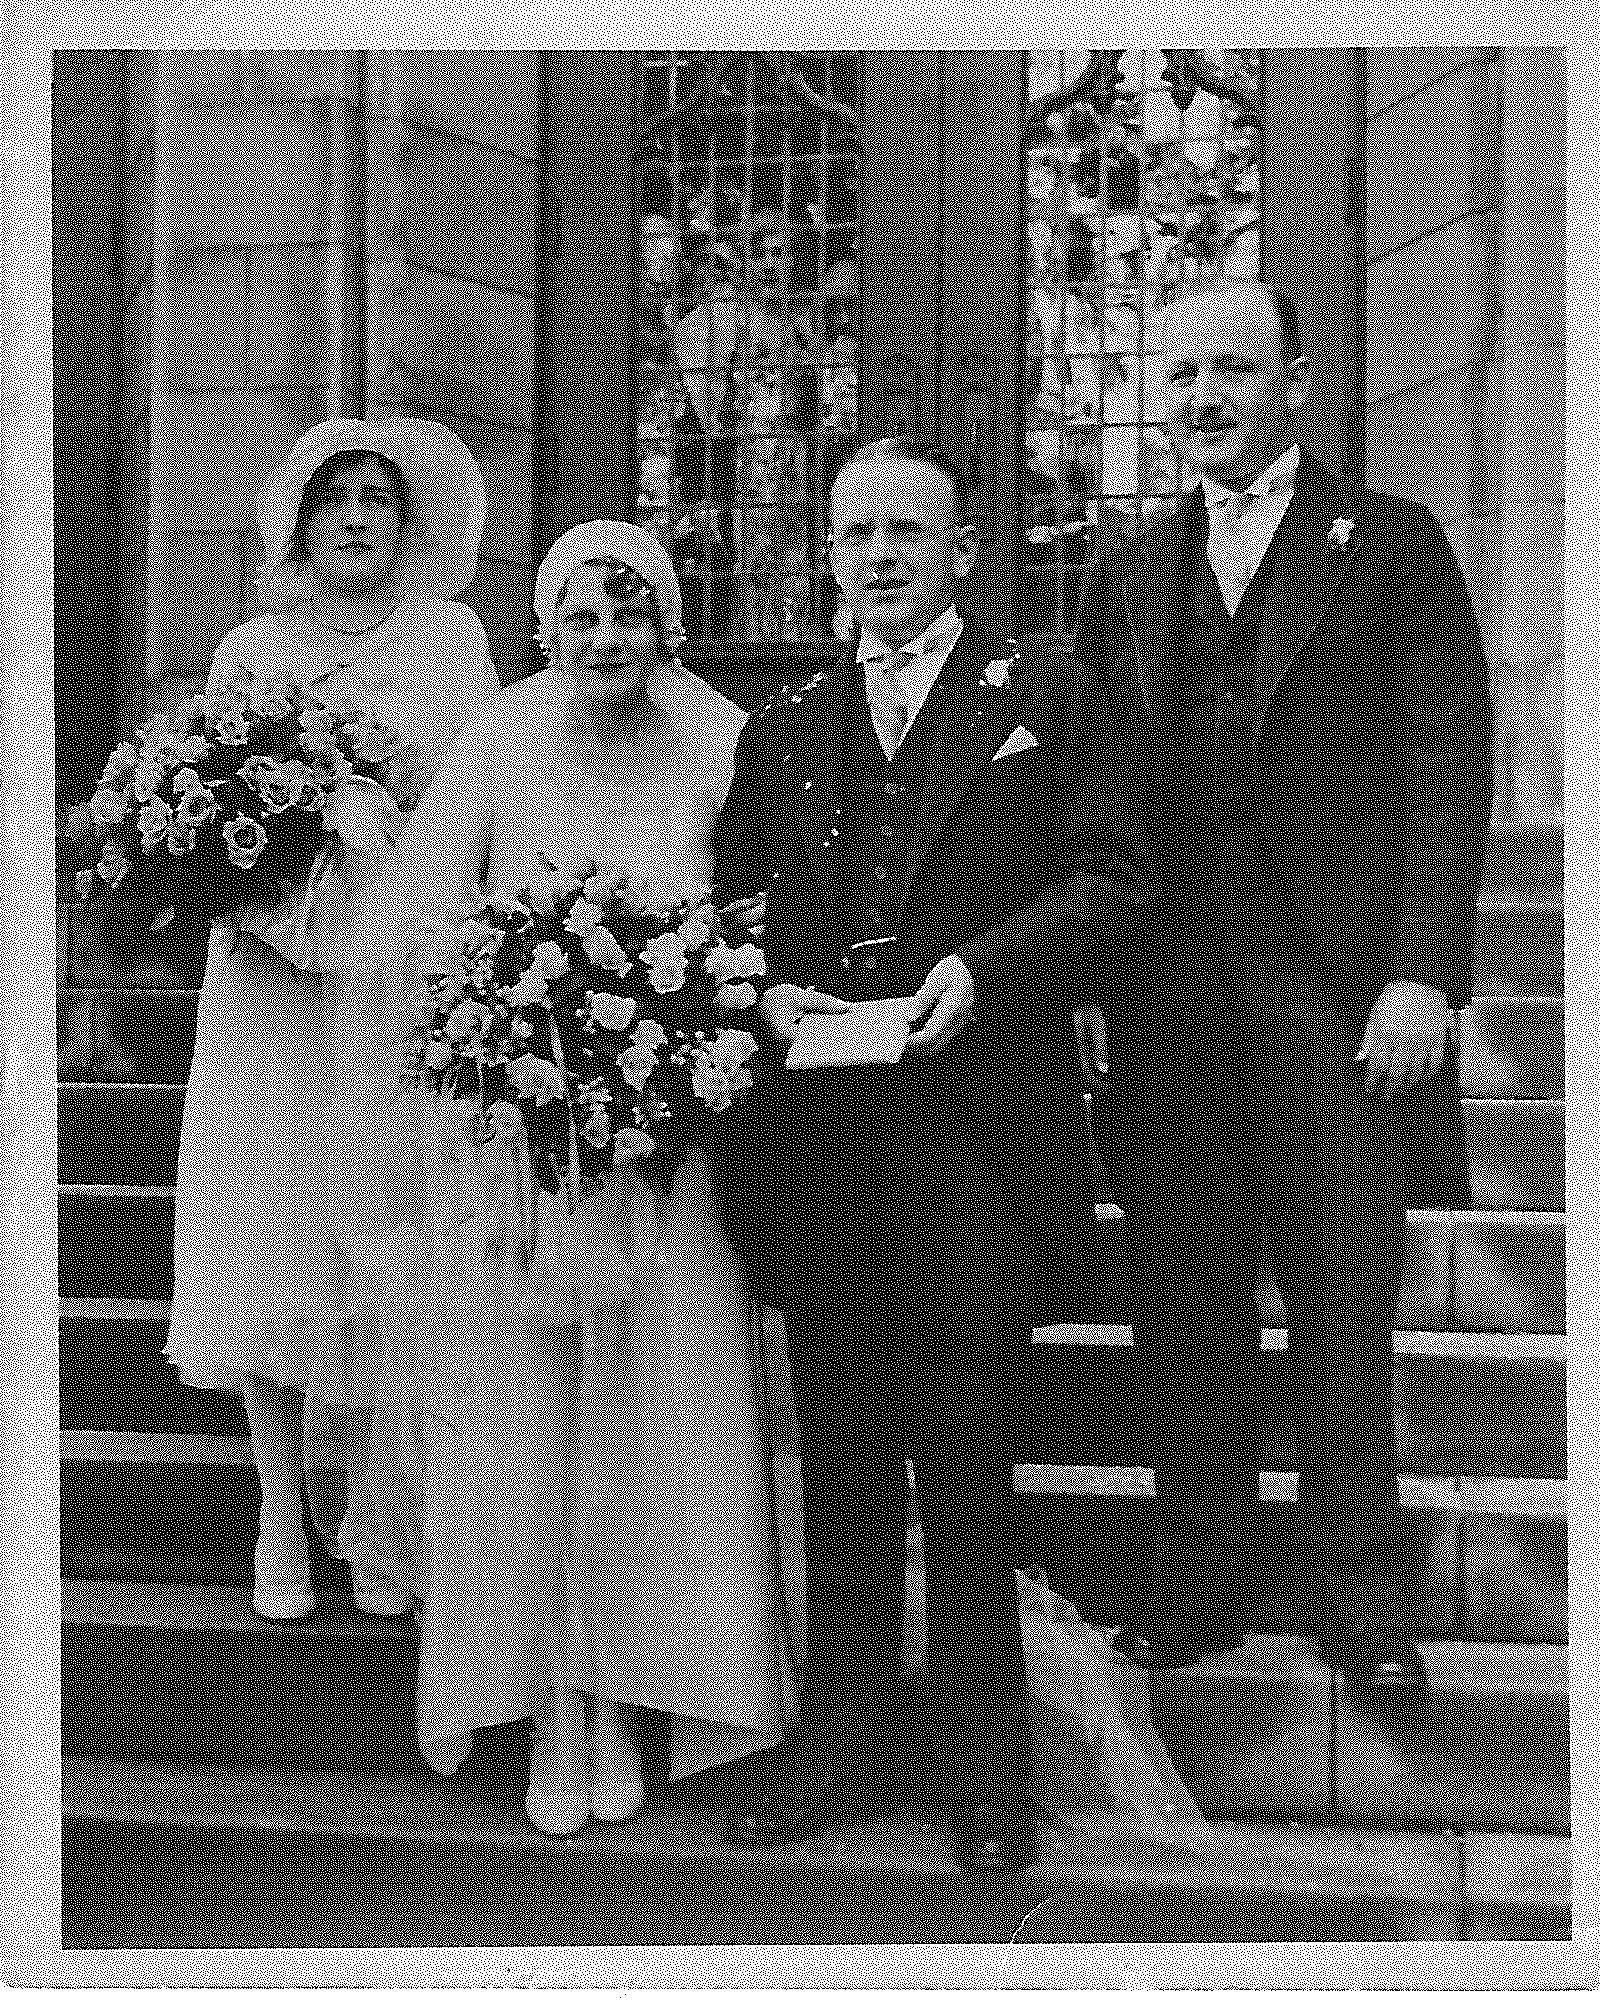 Norman_Vincent_Peale_Ruth_Stafford_Peale_Wedding